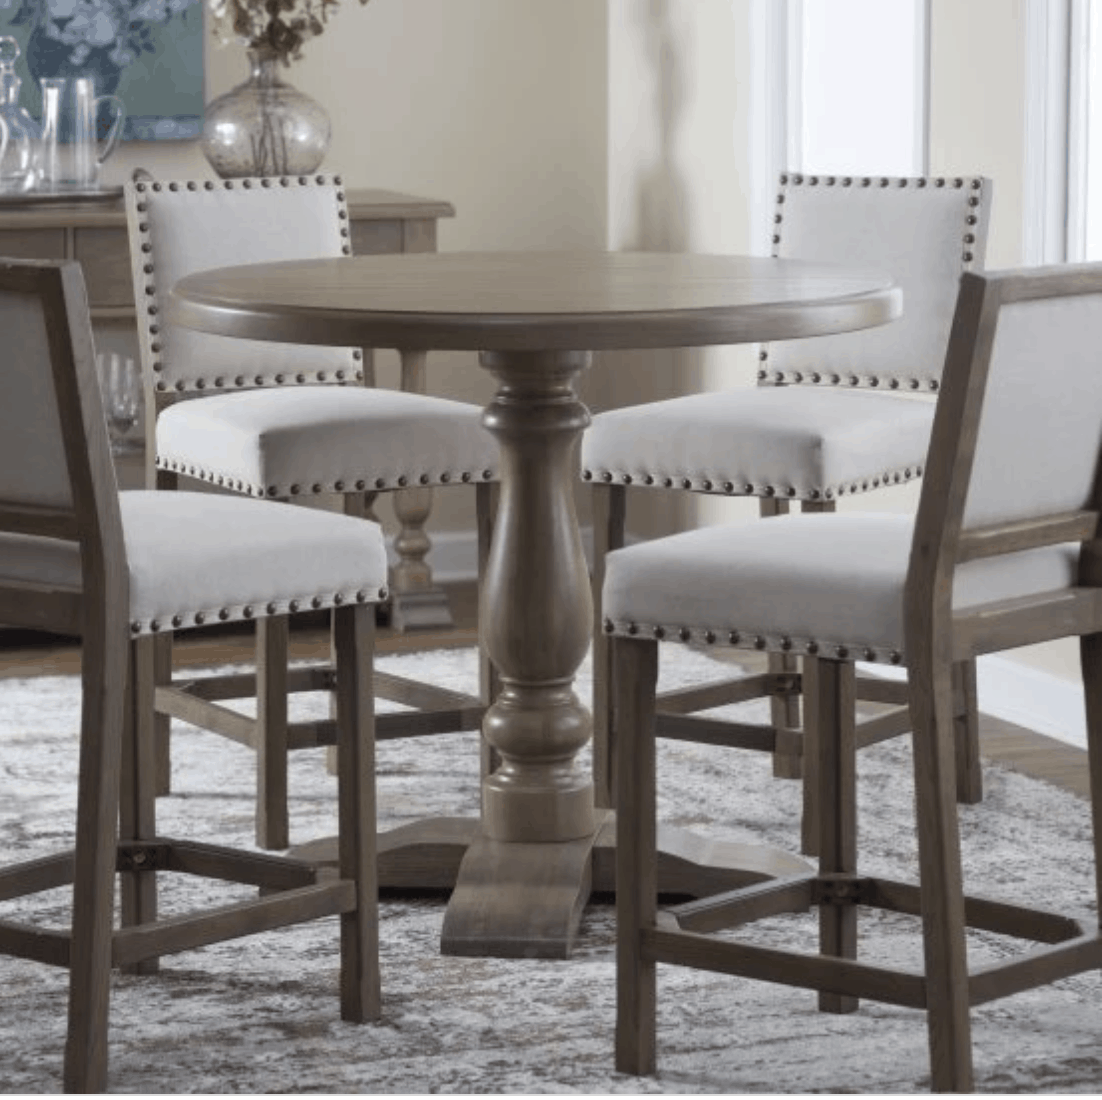 Dining Room Bar Table: 37 Types Of Chairs For Your Home Explained